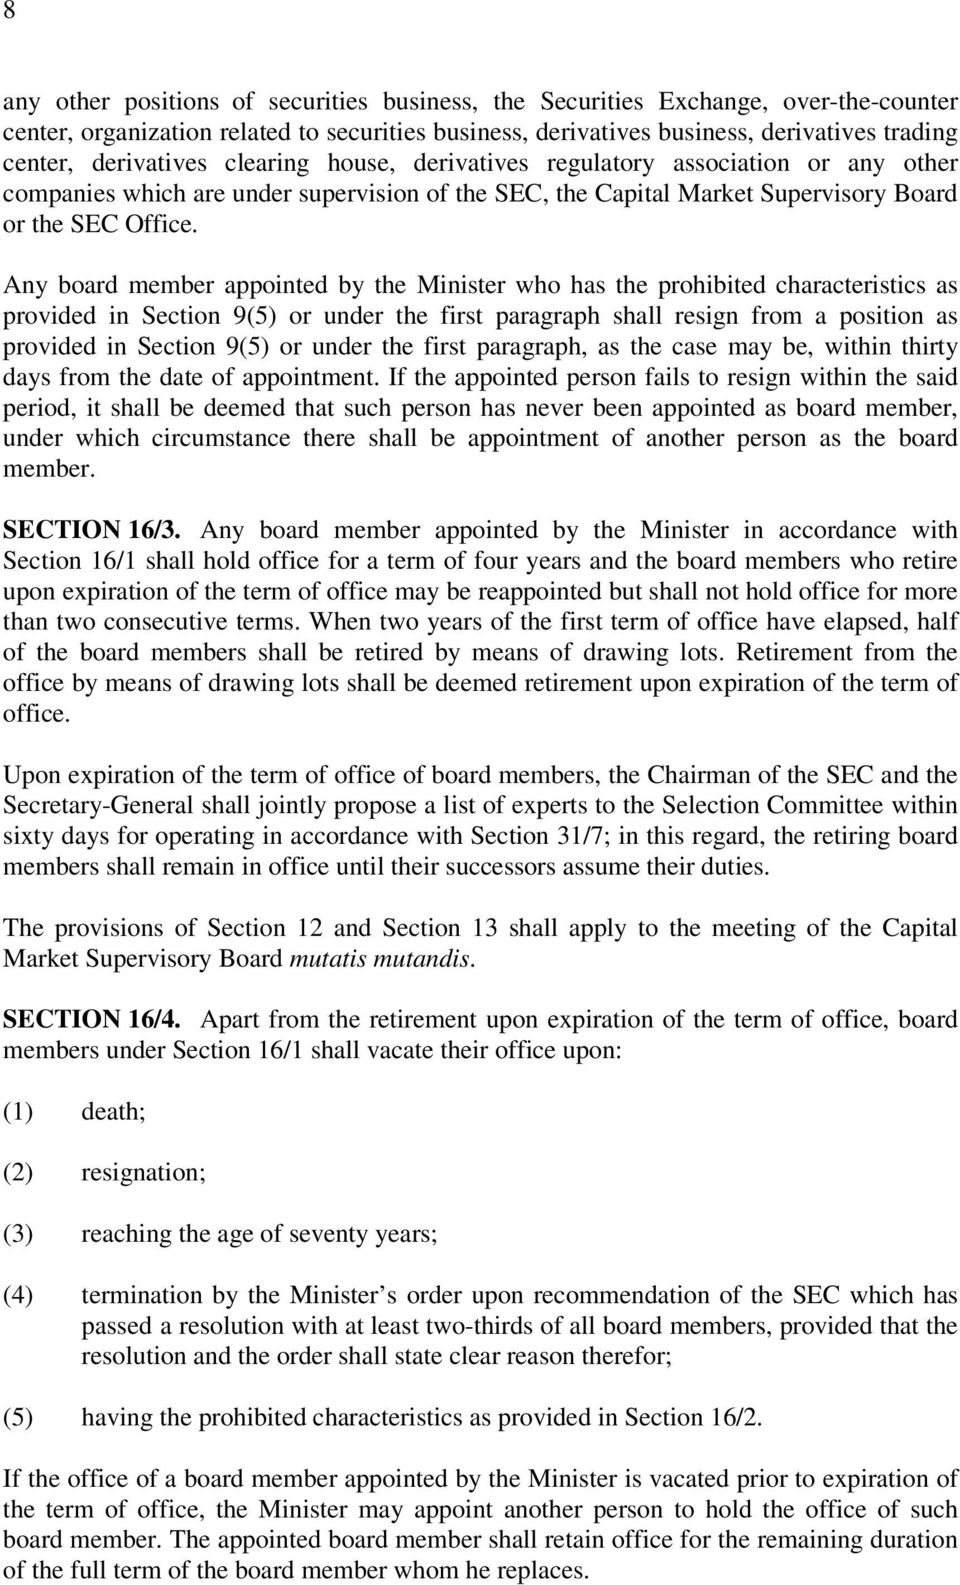 Any board member appointed by the Minister who has the prohibited characteristics as provided in Section 9(5) or under the first paragraph shall resign from a position as provided in Section 9(5) or